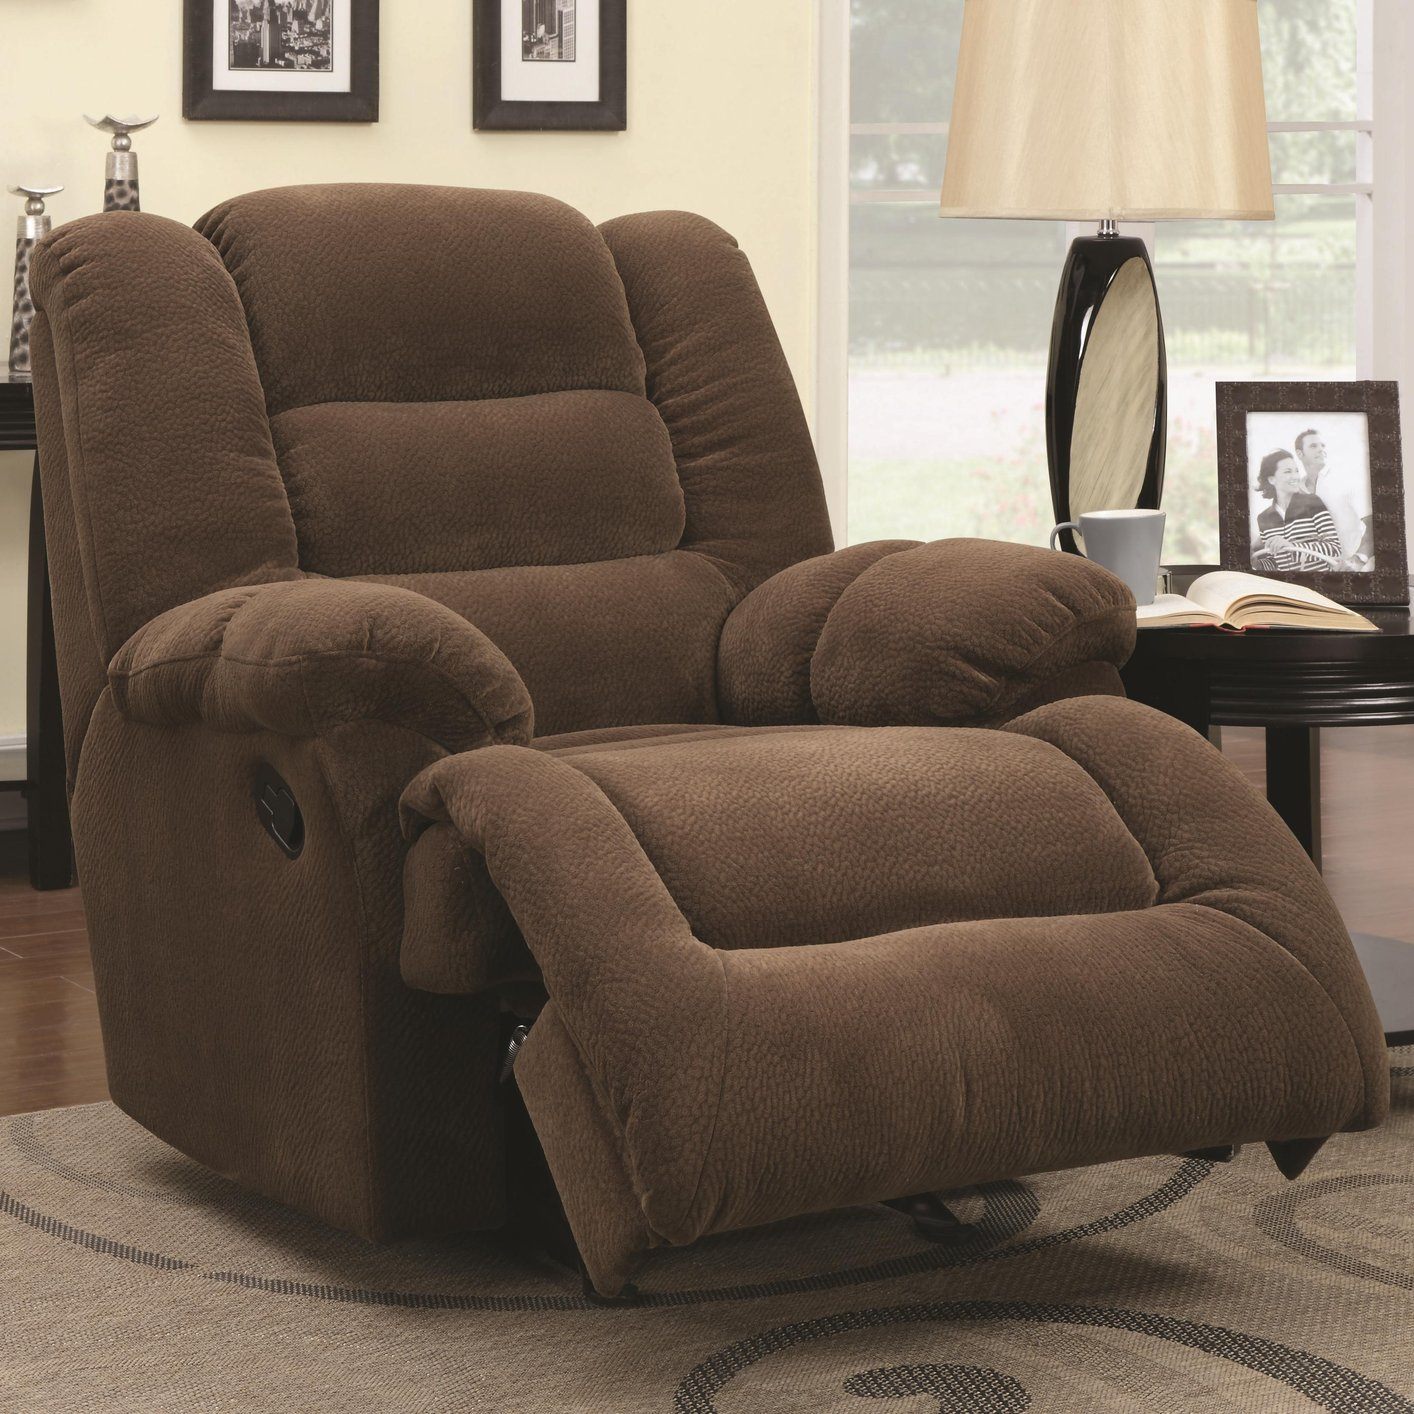 Brown Fabric Glider Recliner - Steal-A-Sofa Furniture Outlet Los Angeles CA